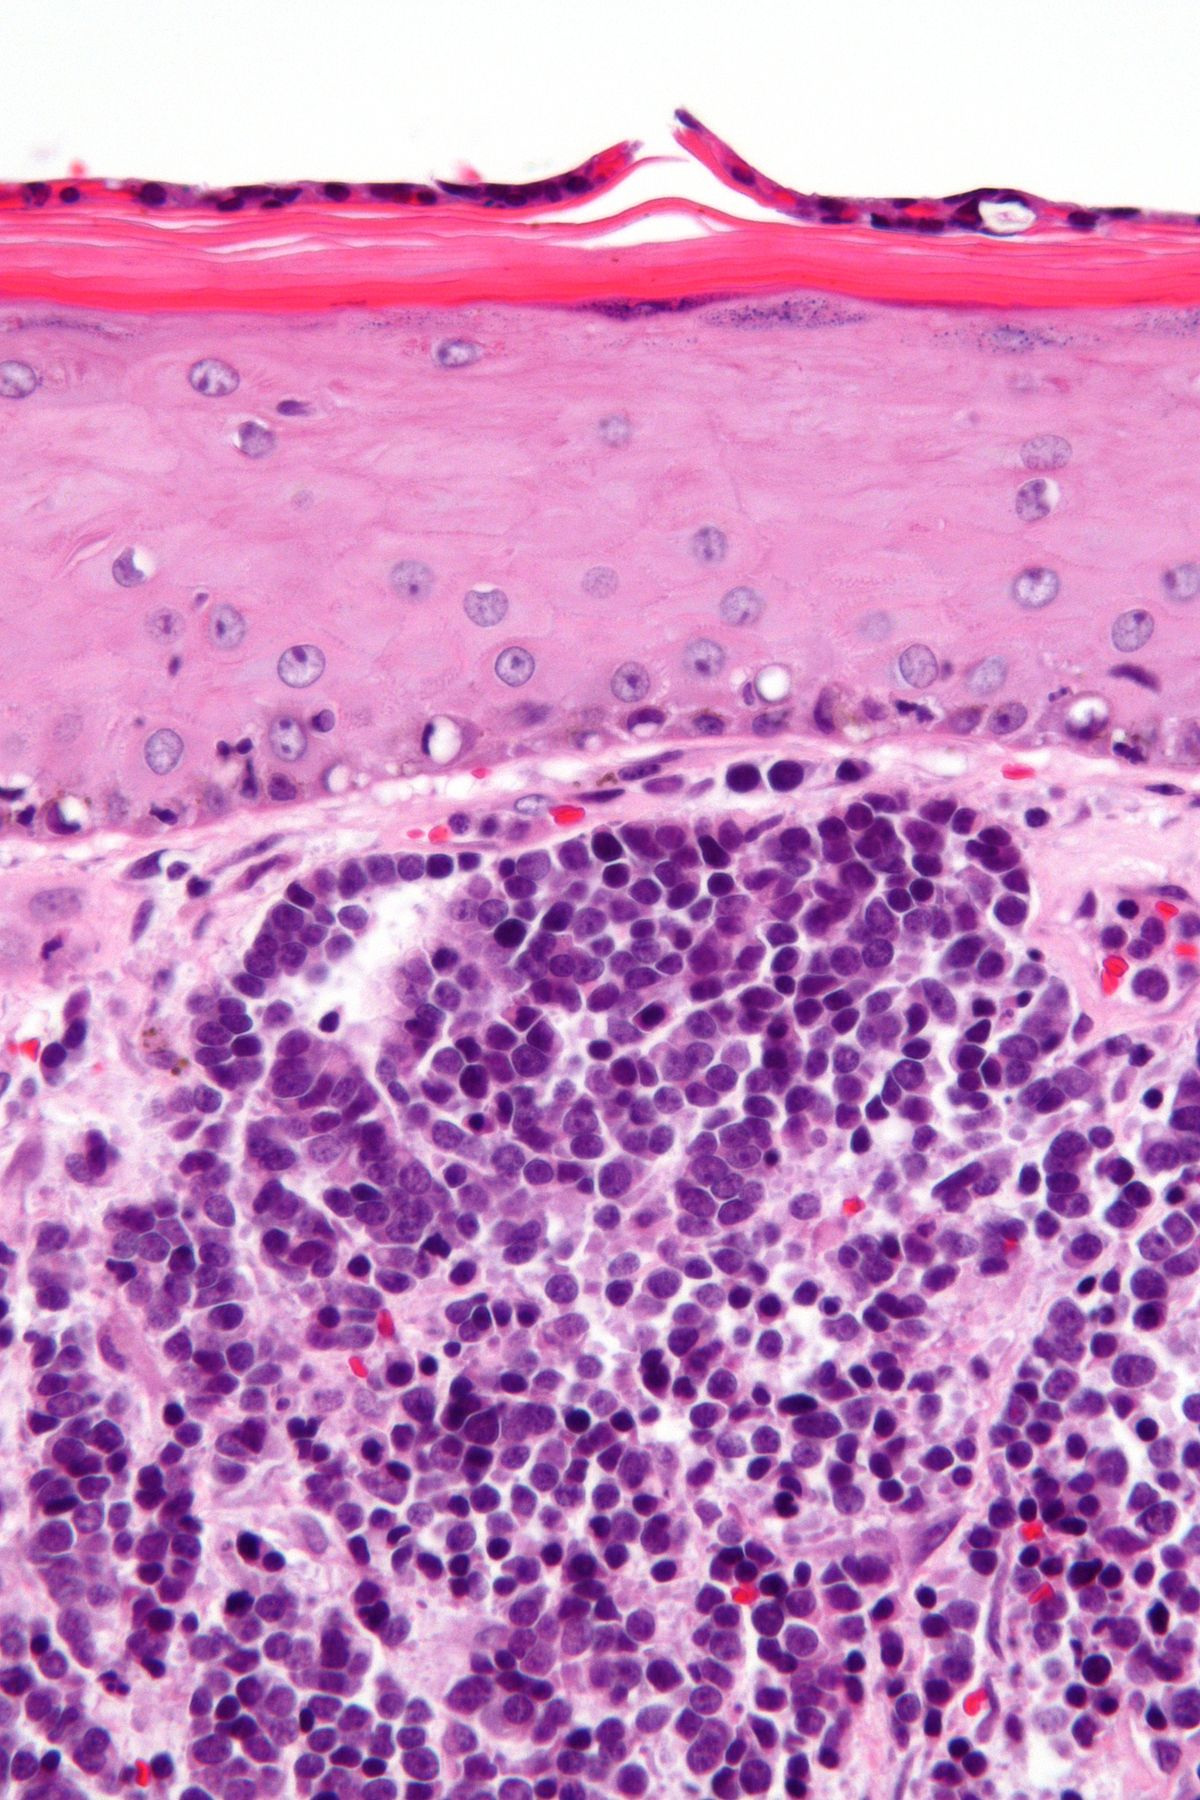 neuroendocrine cancer merkel cell